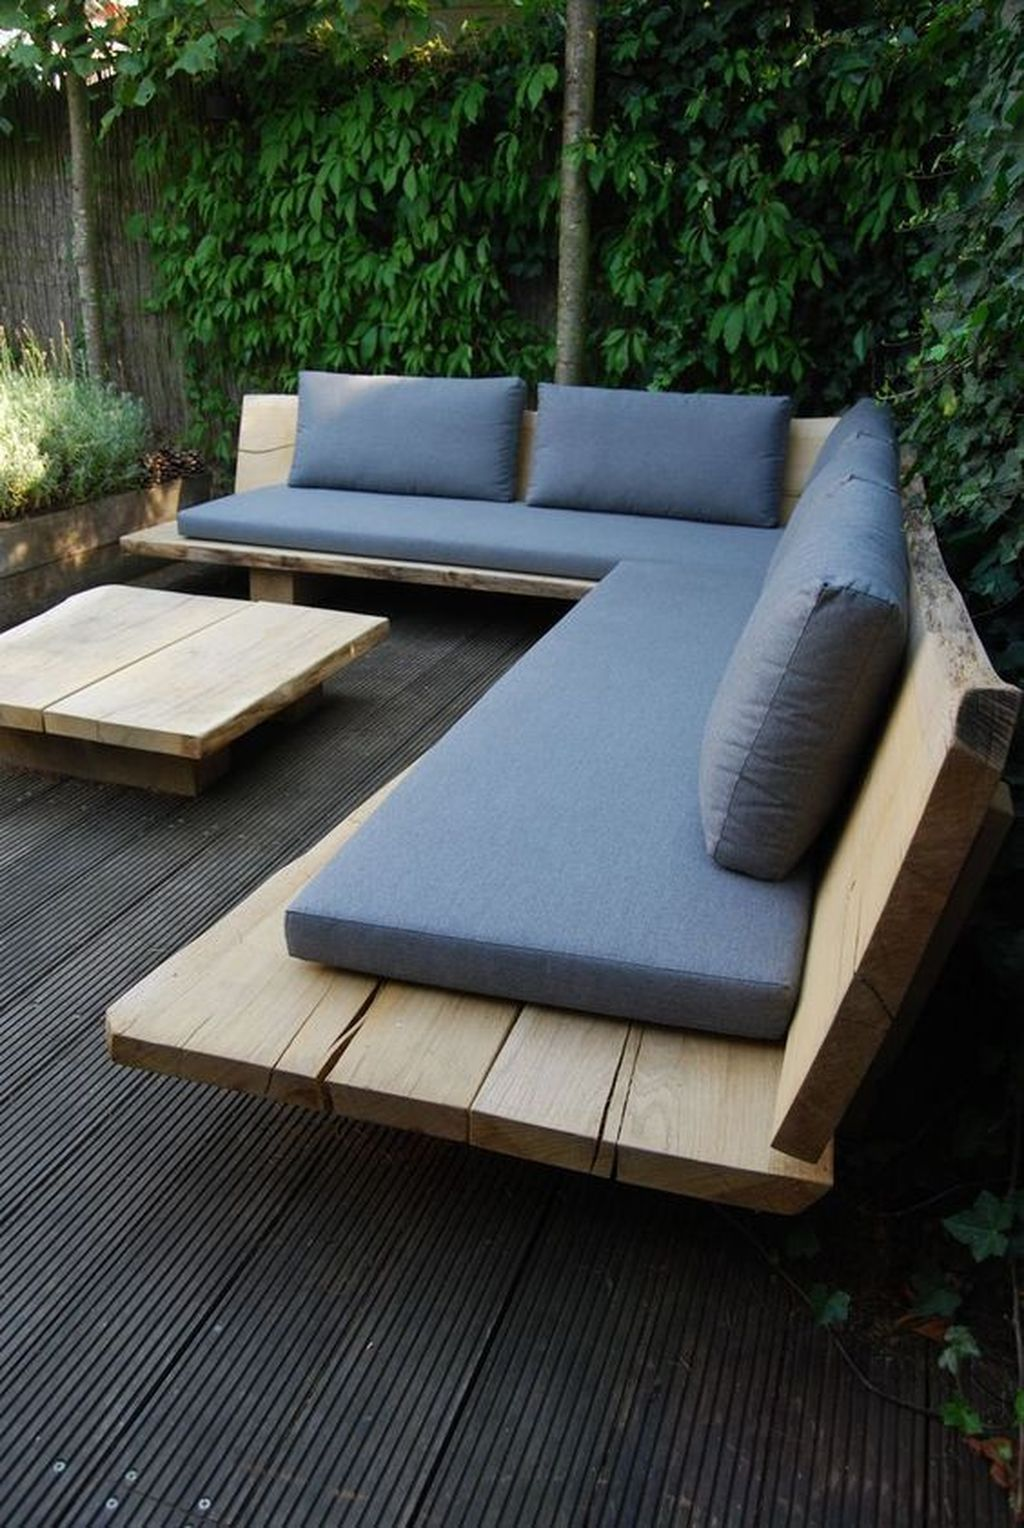 Cool 27 The Best Outdoor Patio Furniture Ideas Modern Outdoor Furniture Outdoor Furniture Decor Diy Bench Outdoor